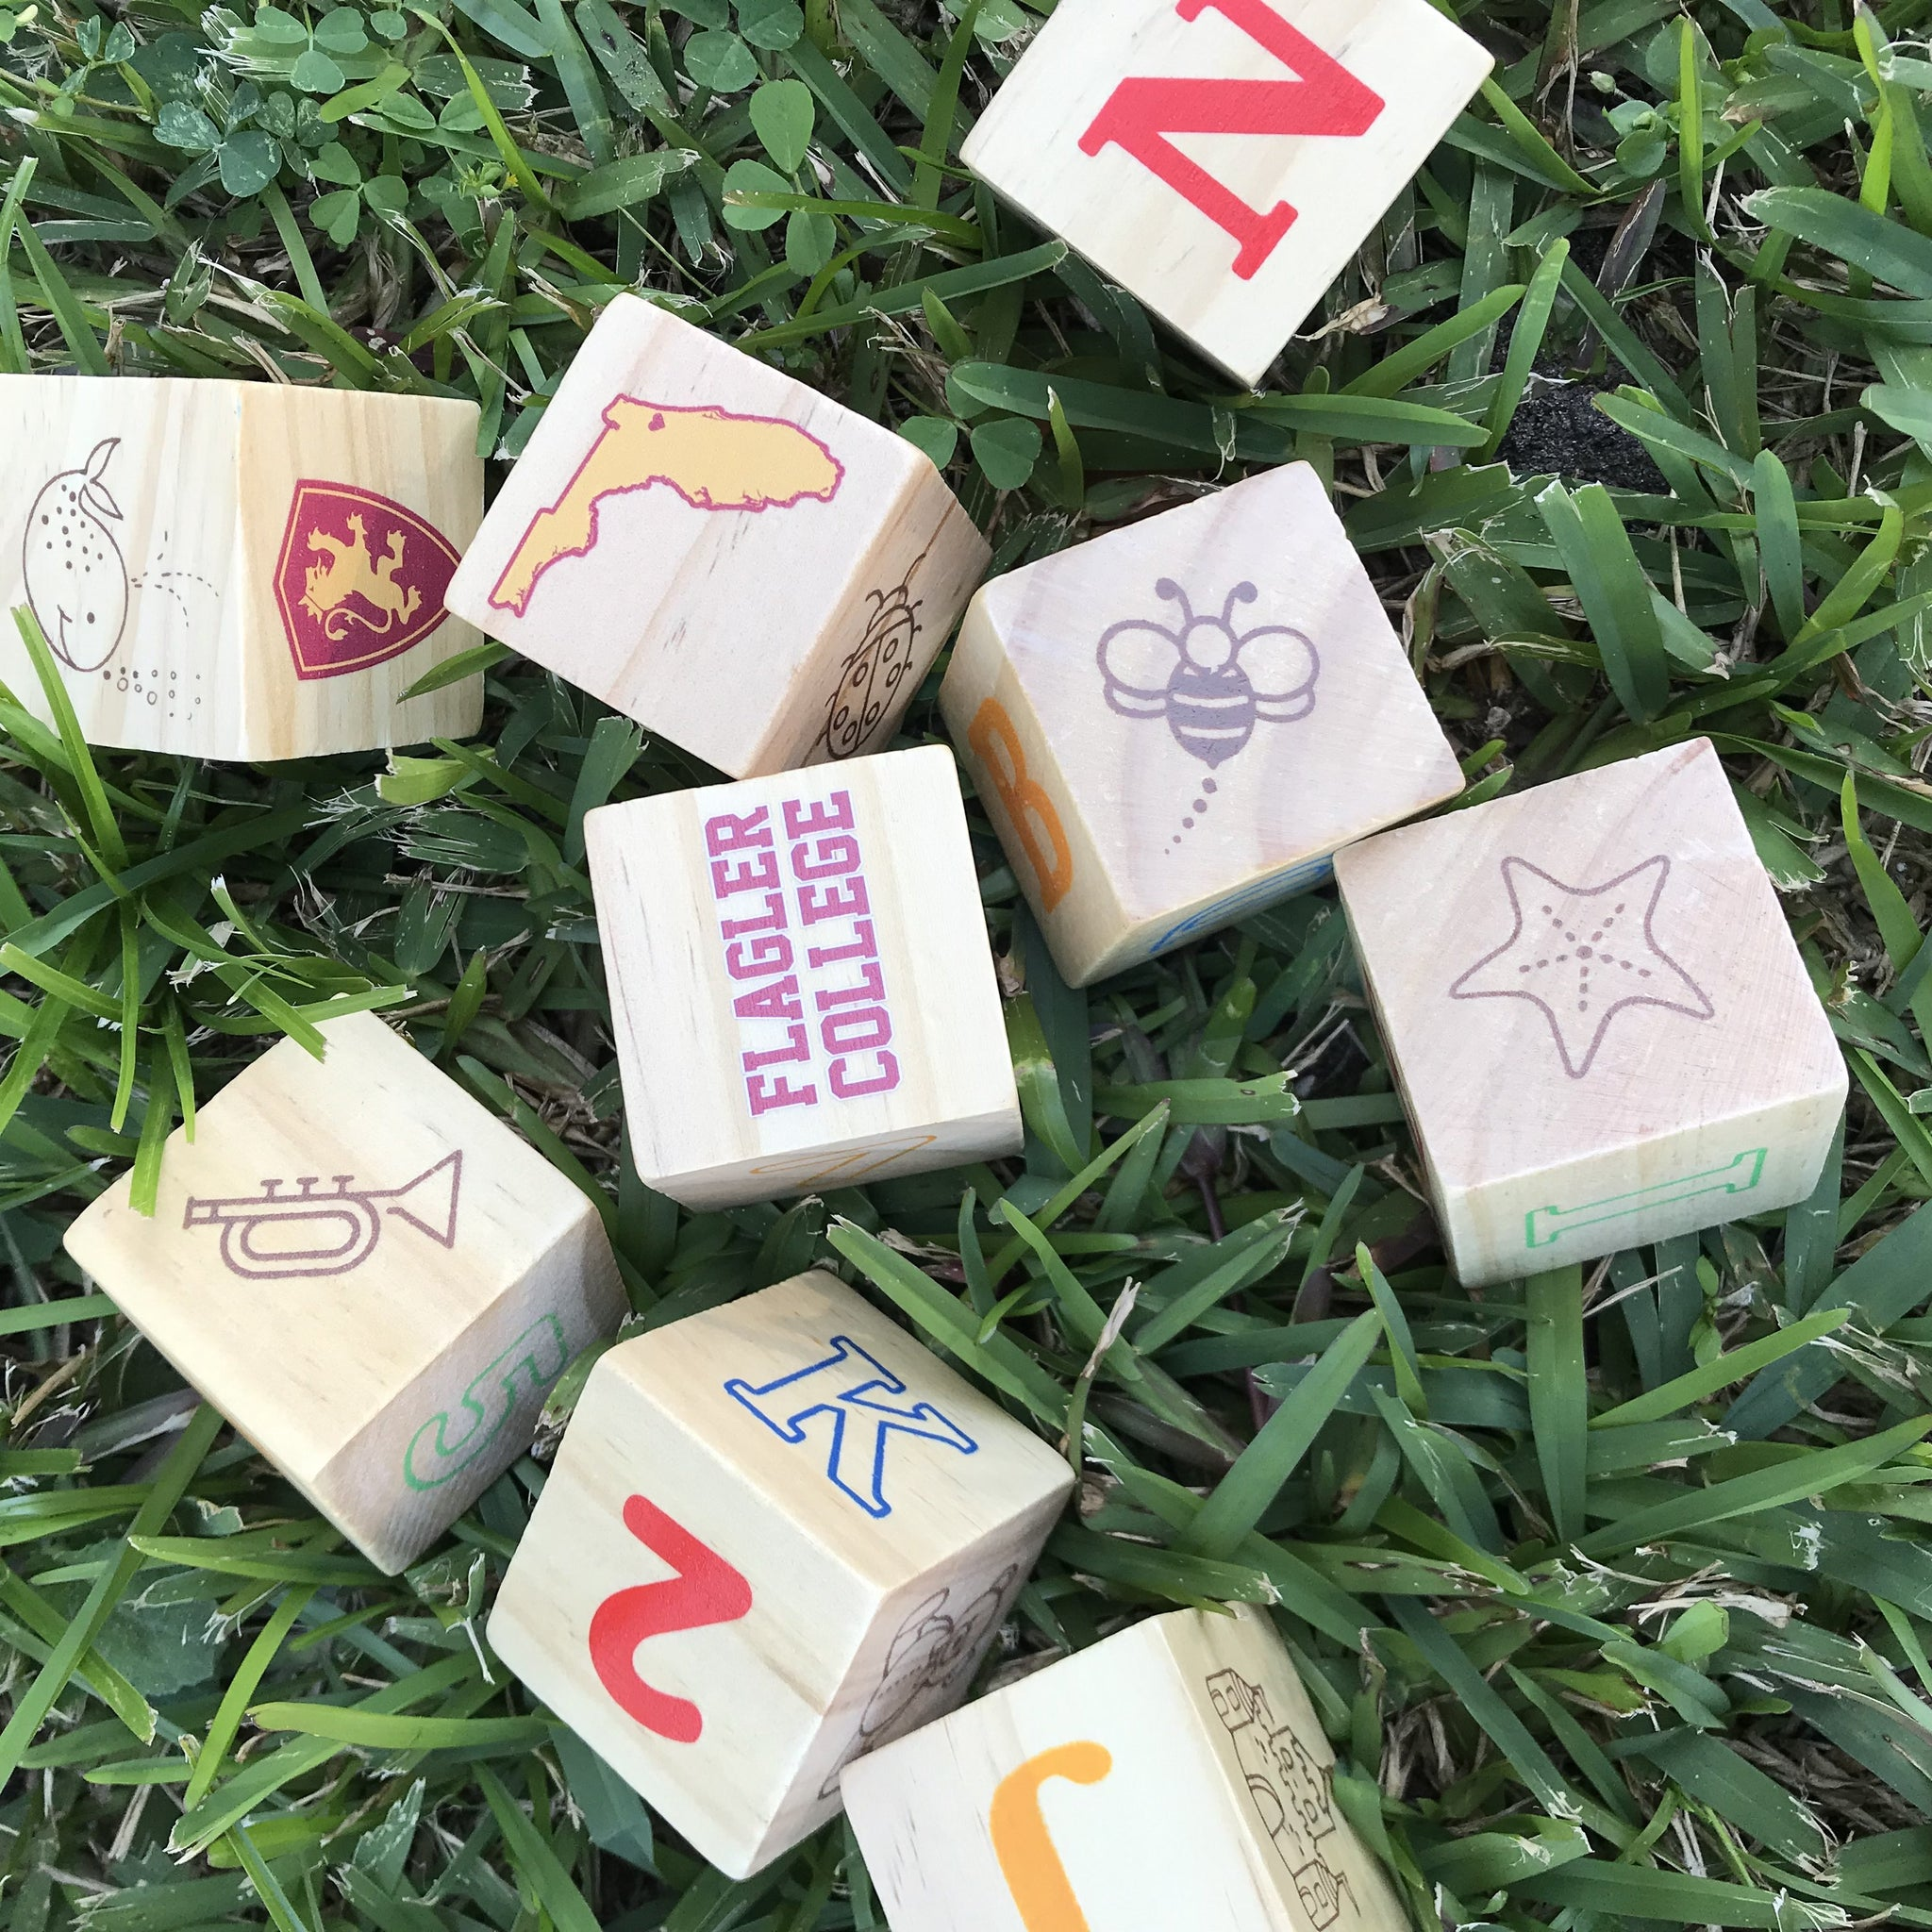 set of 9 wooden blocks with themes of flagler college in red and gold on them